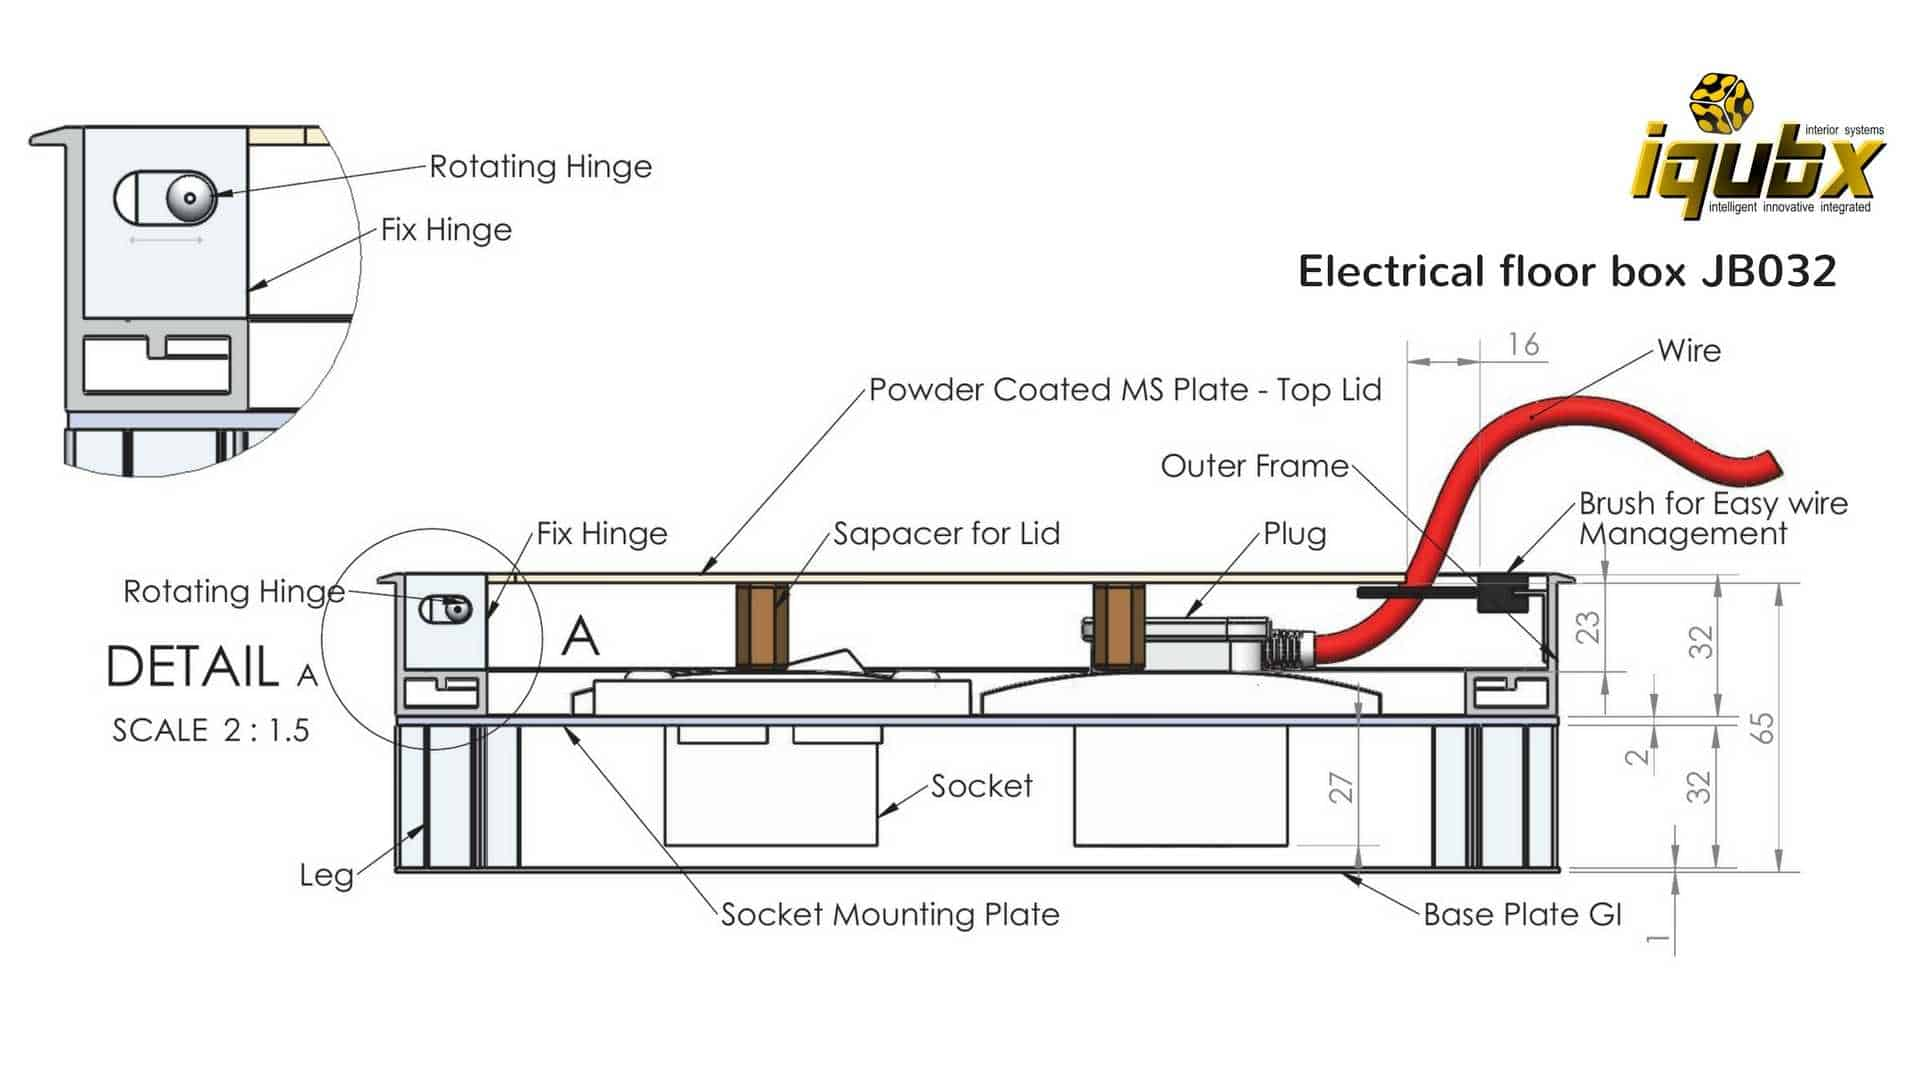 ff junction box